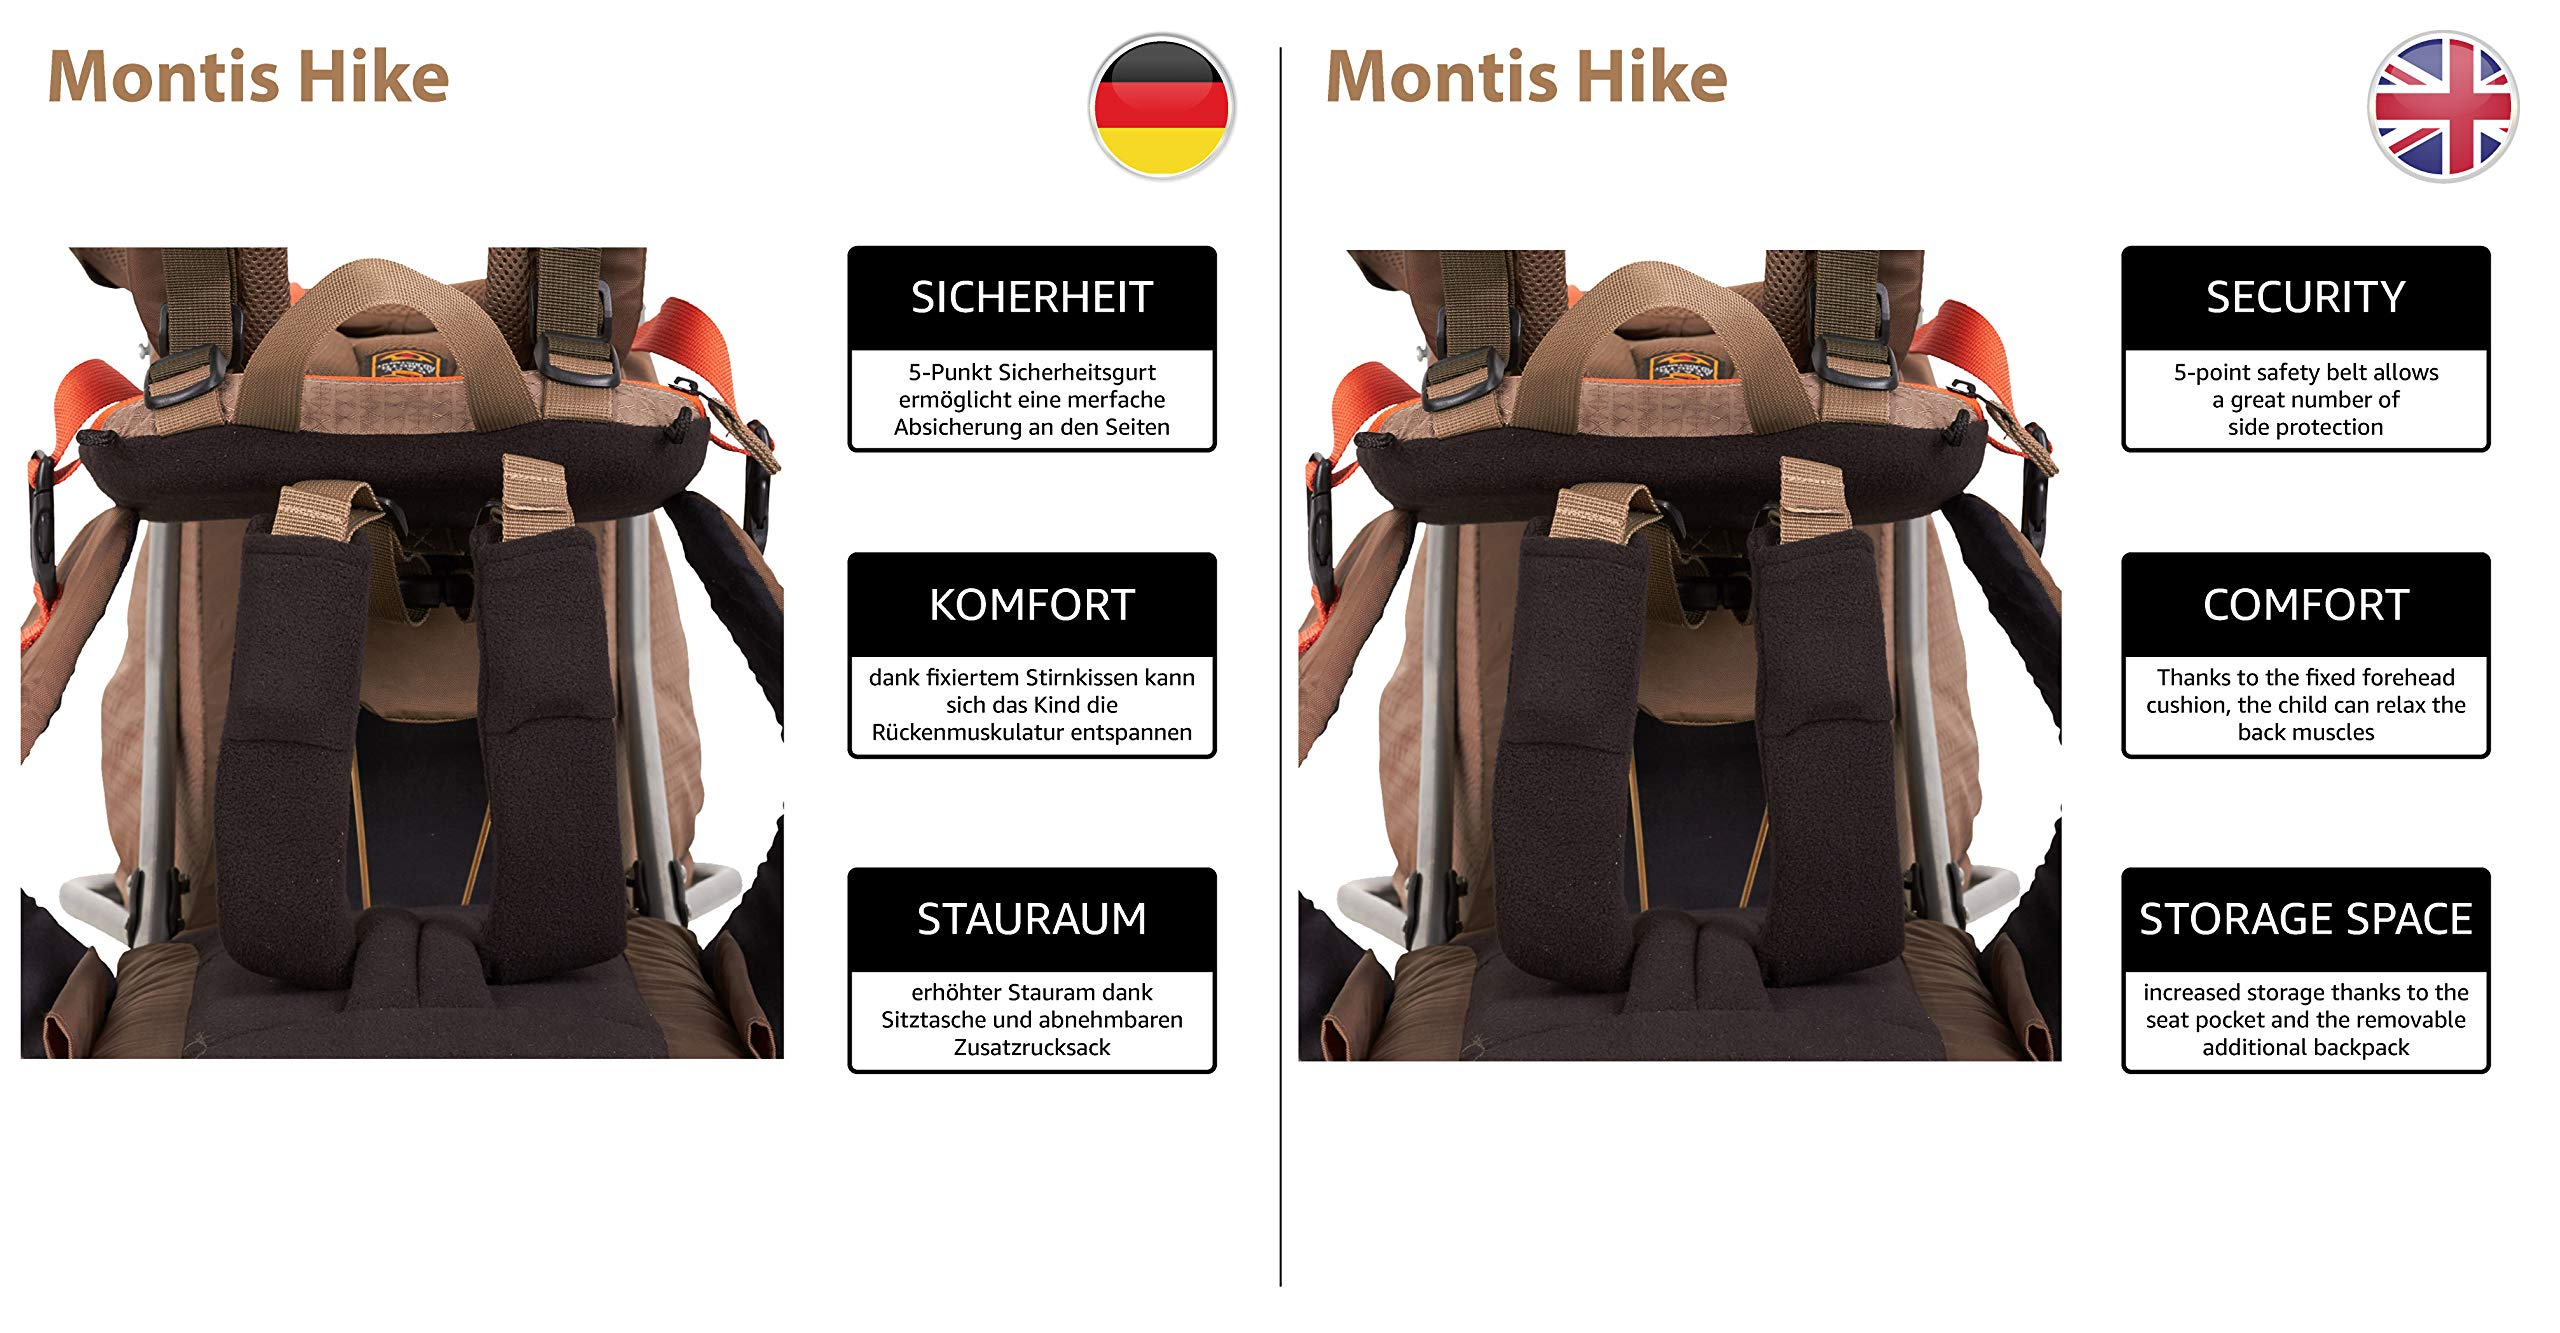 MONTIS HIKE, Premium Back Baby/Child Carrier, Up to 25kg, (mocha) M MONTIS OUTDOOR 89cm high, 37cm wide | up to 25kg | various colours | 28L seat bag Laminated and dirt-repellant outer material | approx. 2.2kg (without extras) Fully-adjustable, padded 5-point child's safety harness | plush lining, raised wind guard, can be filled from both sides | forehead cushion 10